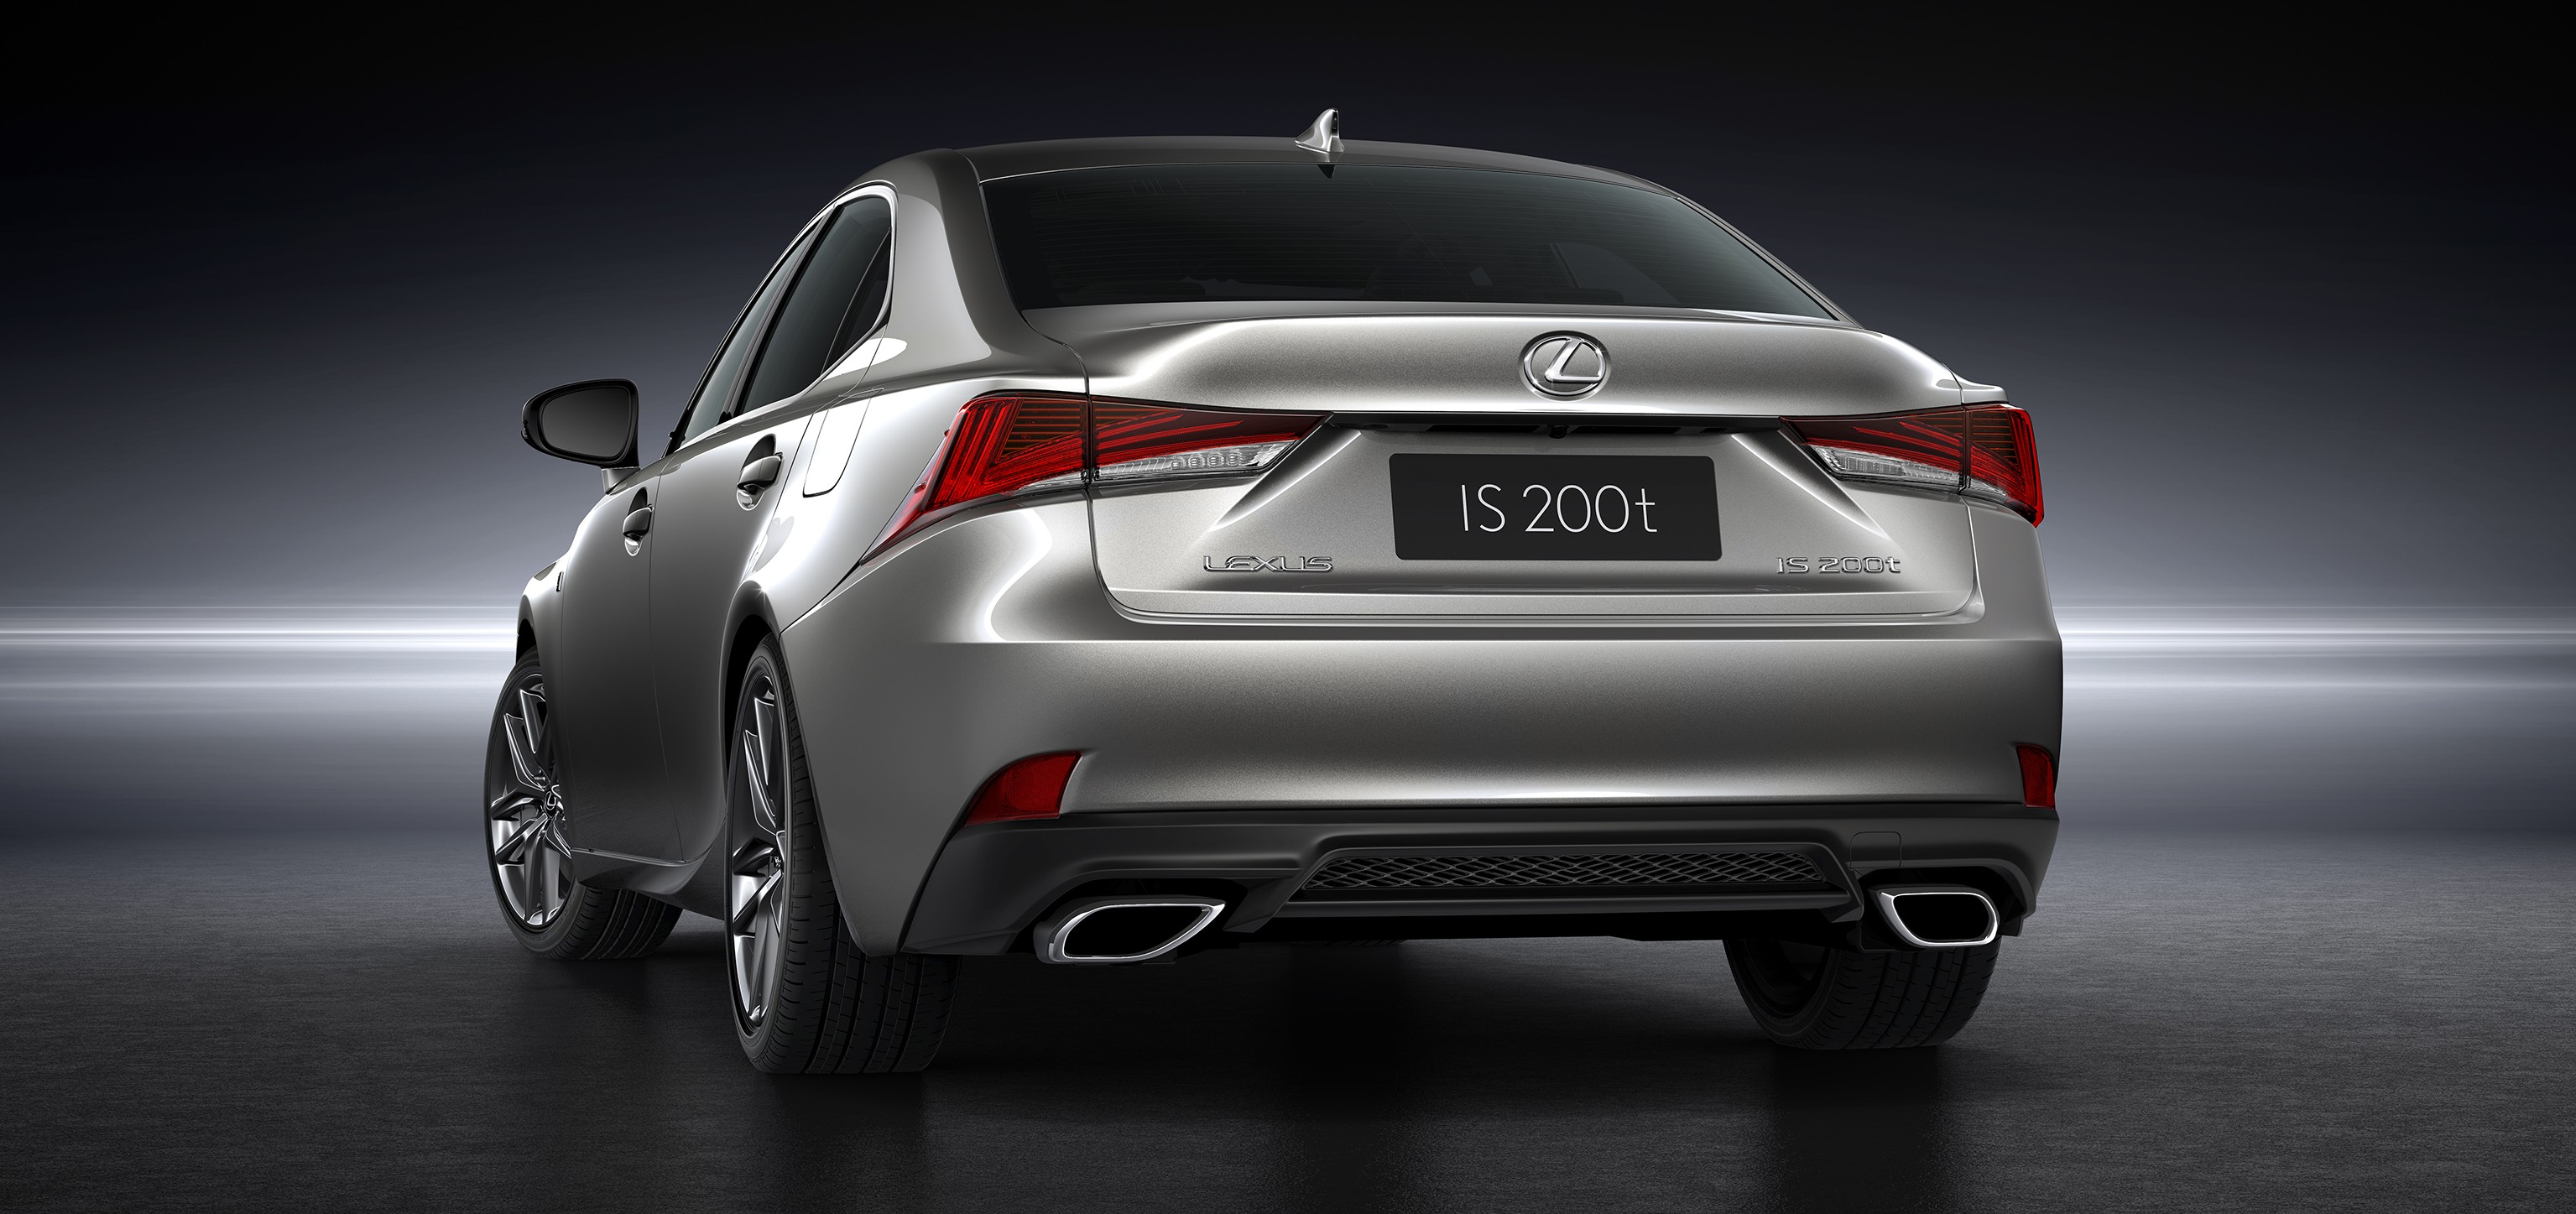 2017 lexus is makes european debut at 2016 paris motor show